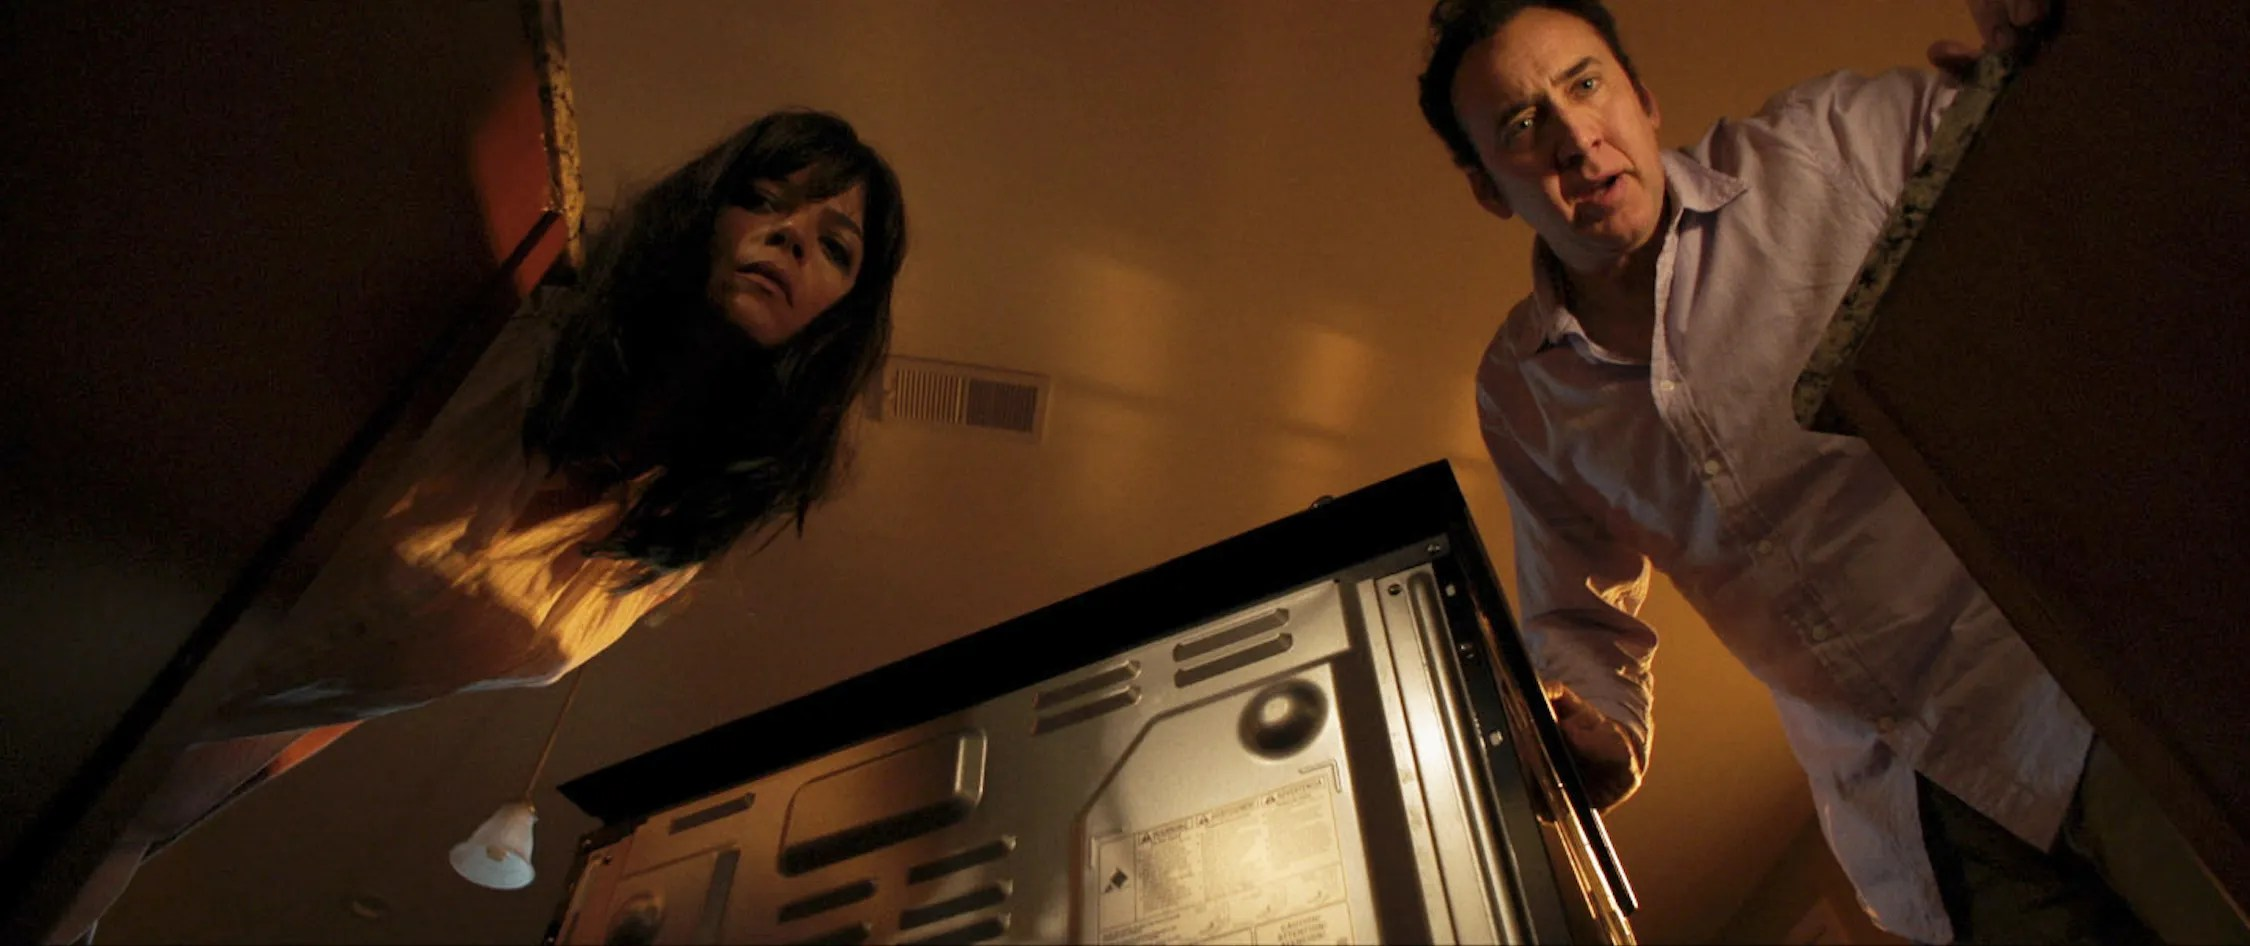 Nicolas Cages Is Unhinged In New Mom And Dad Images Collider